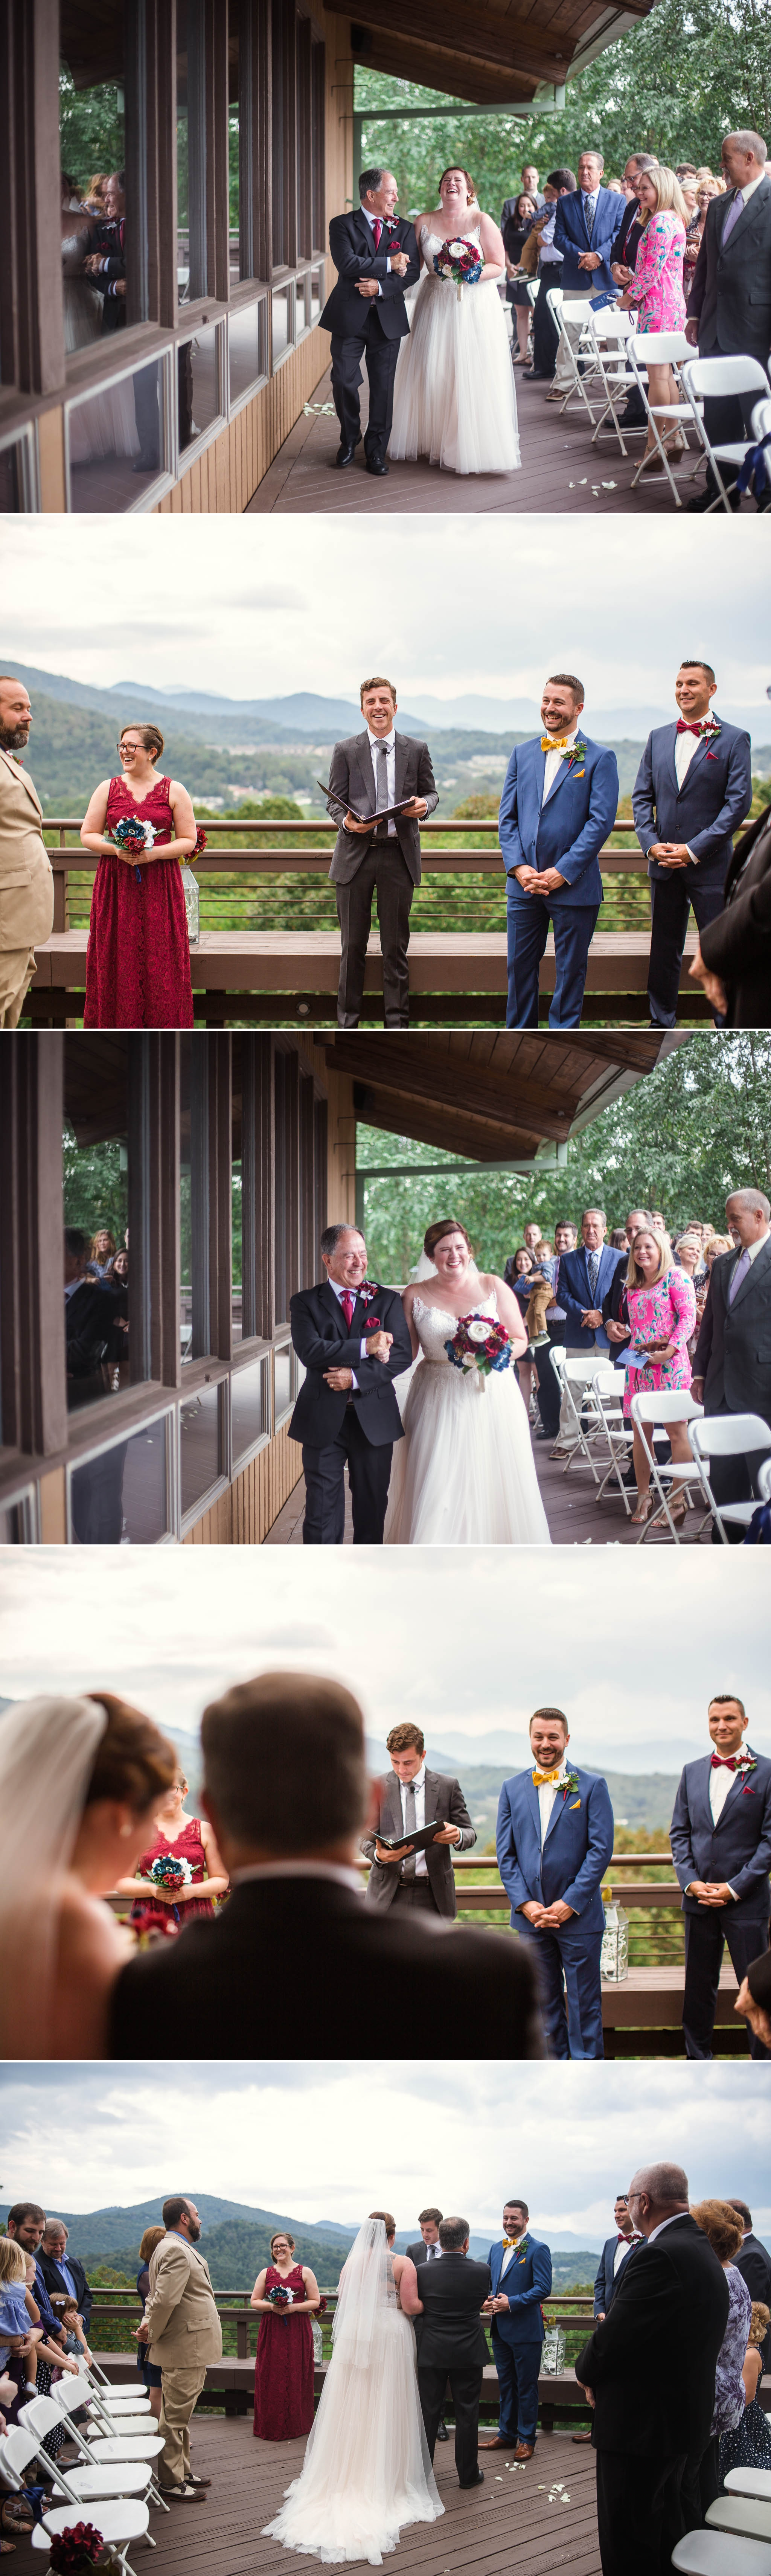 Wedding Ceremony overlooking the Blue Ridge Mountains - Meredith + Jason - The Crest Center and Pavilion in Asheville, NC - Raleigh Wedding Photographer